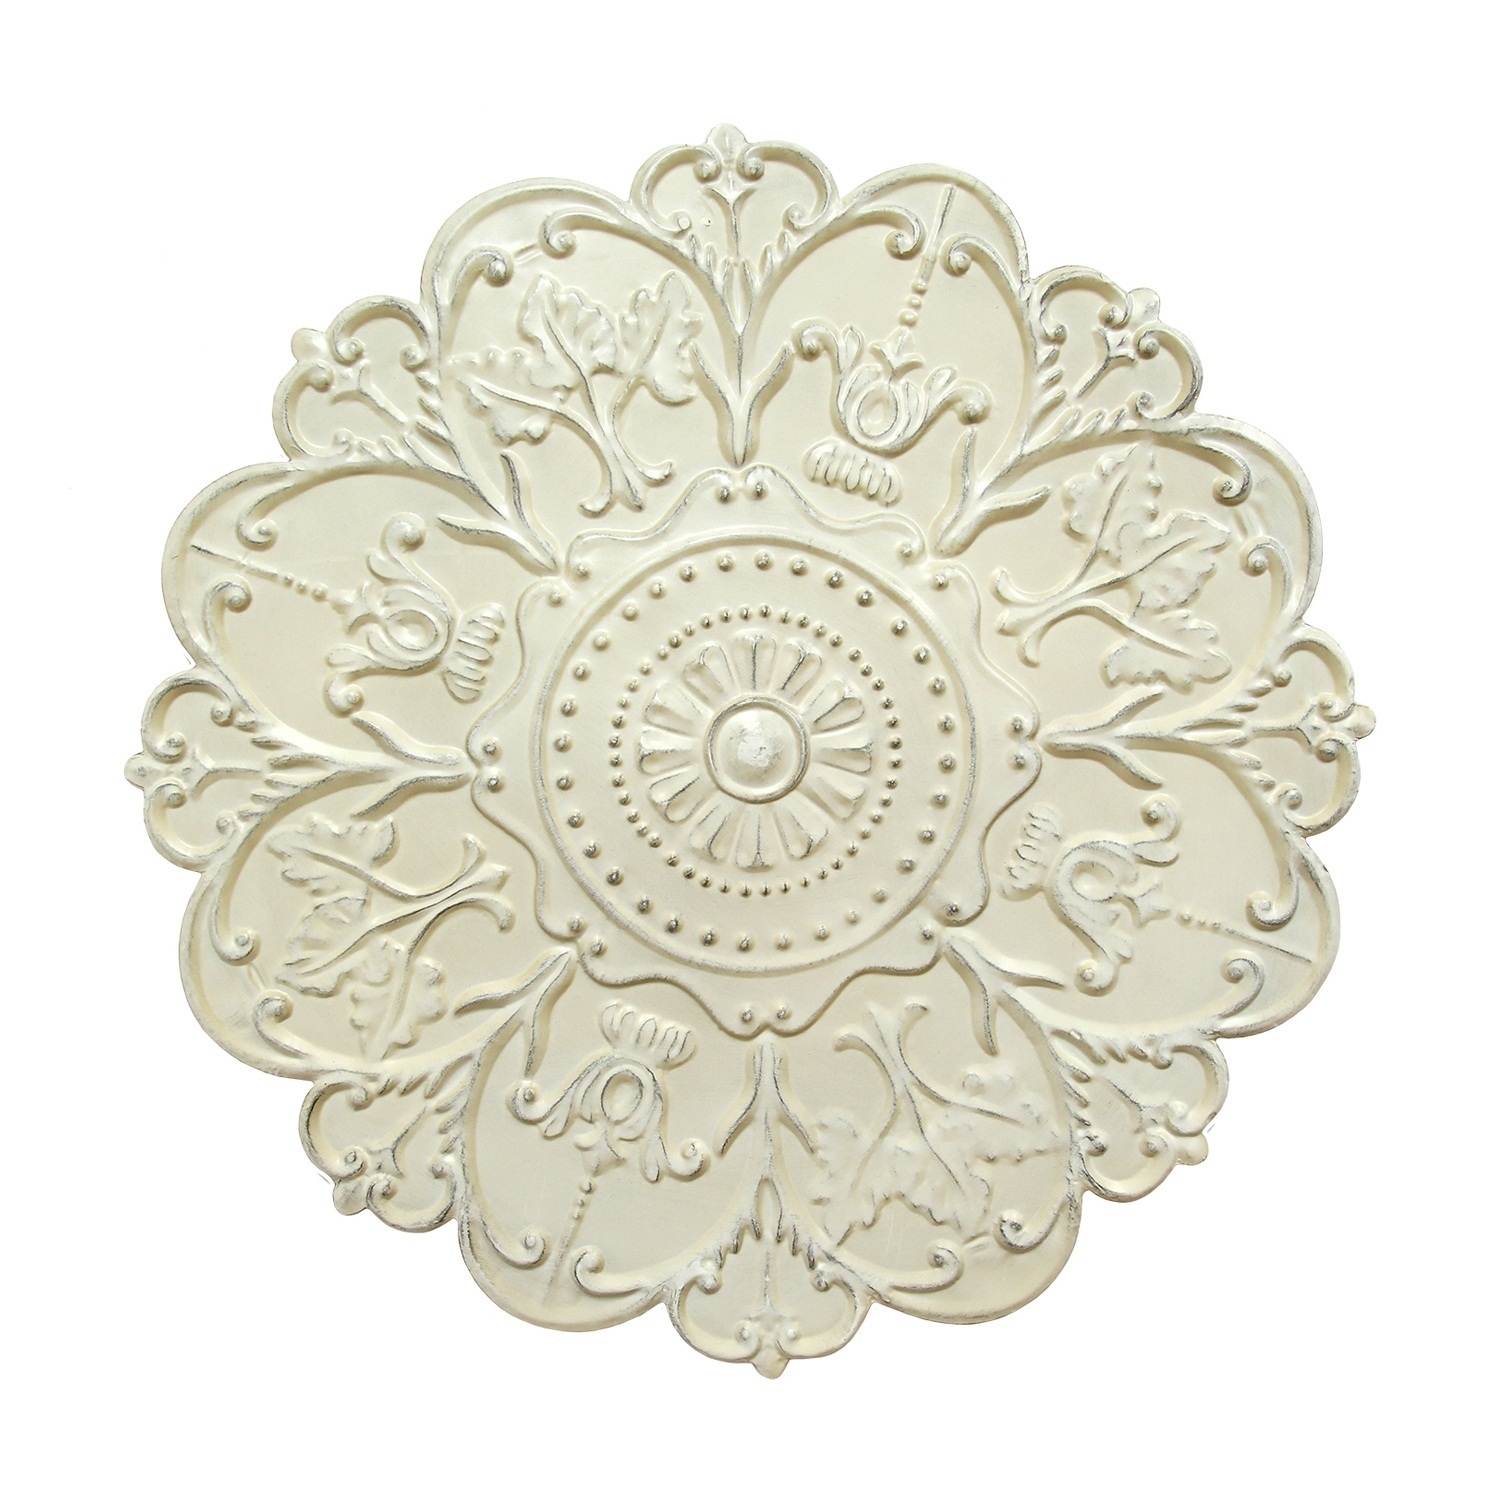 Medallion Wall Art Floral Accent Round Metal Home Decor Shabby White Pertaining To Most Popular Medallion Wall Art (Gallery 9 of 20)